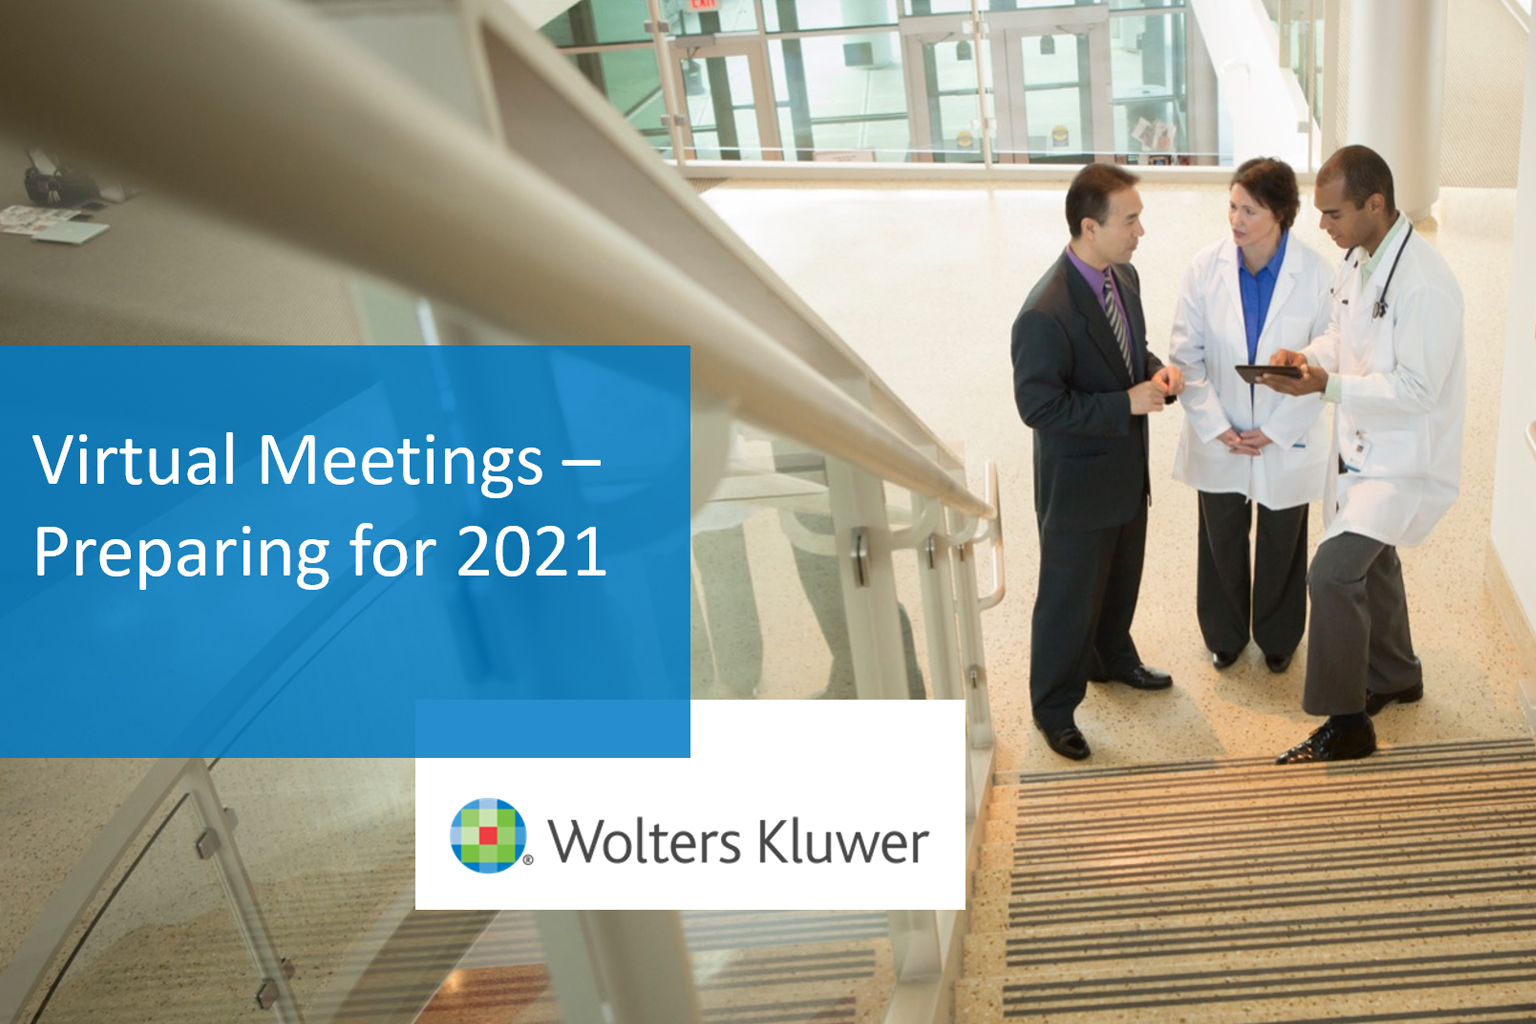 Virtual Meeting Solutions – Preparing for 2021: A webinar